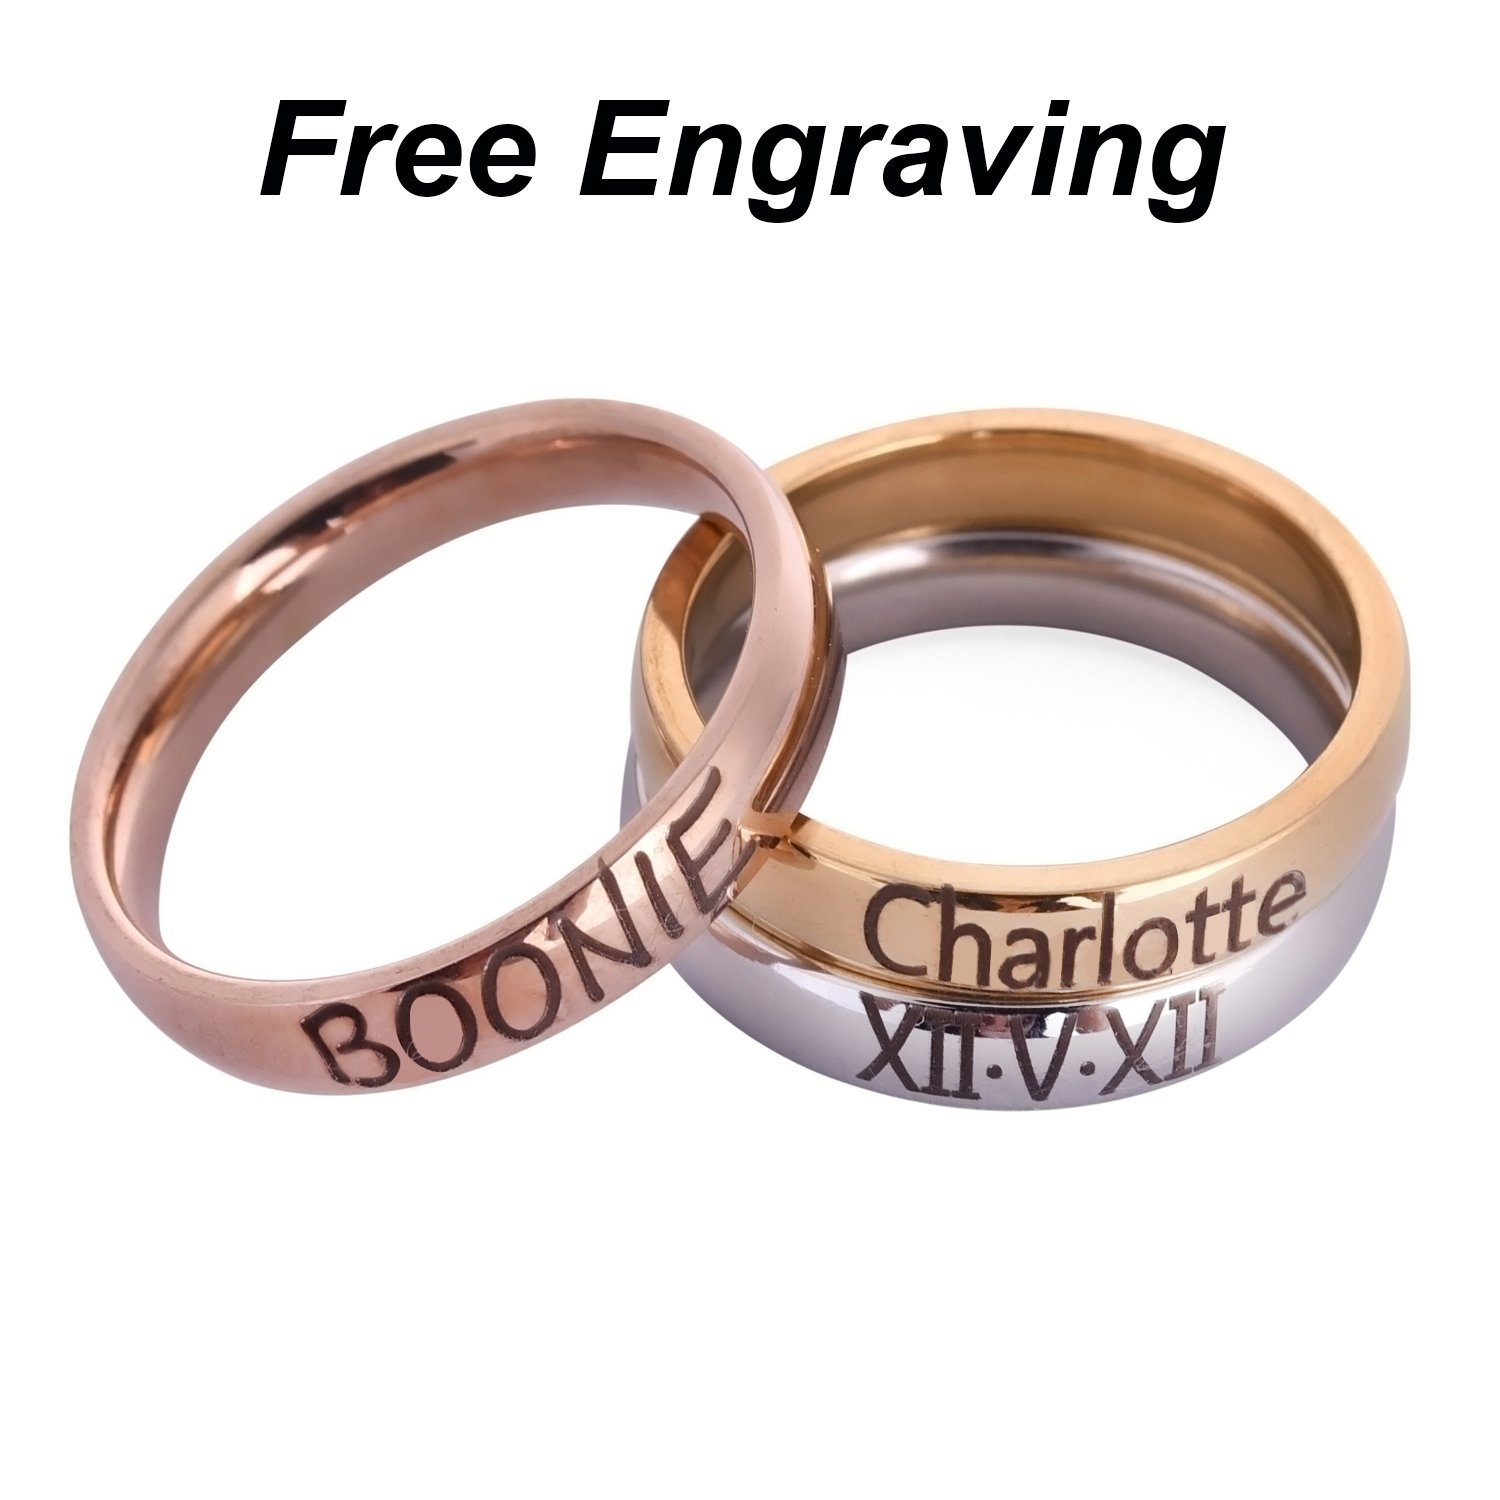 Personalized Rings Stackable Rings Stacking Rings Name Ring Stacking Rings Band Name Rings Stainless Steel 4MM Width Babe King Jewelry